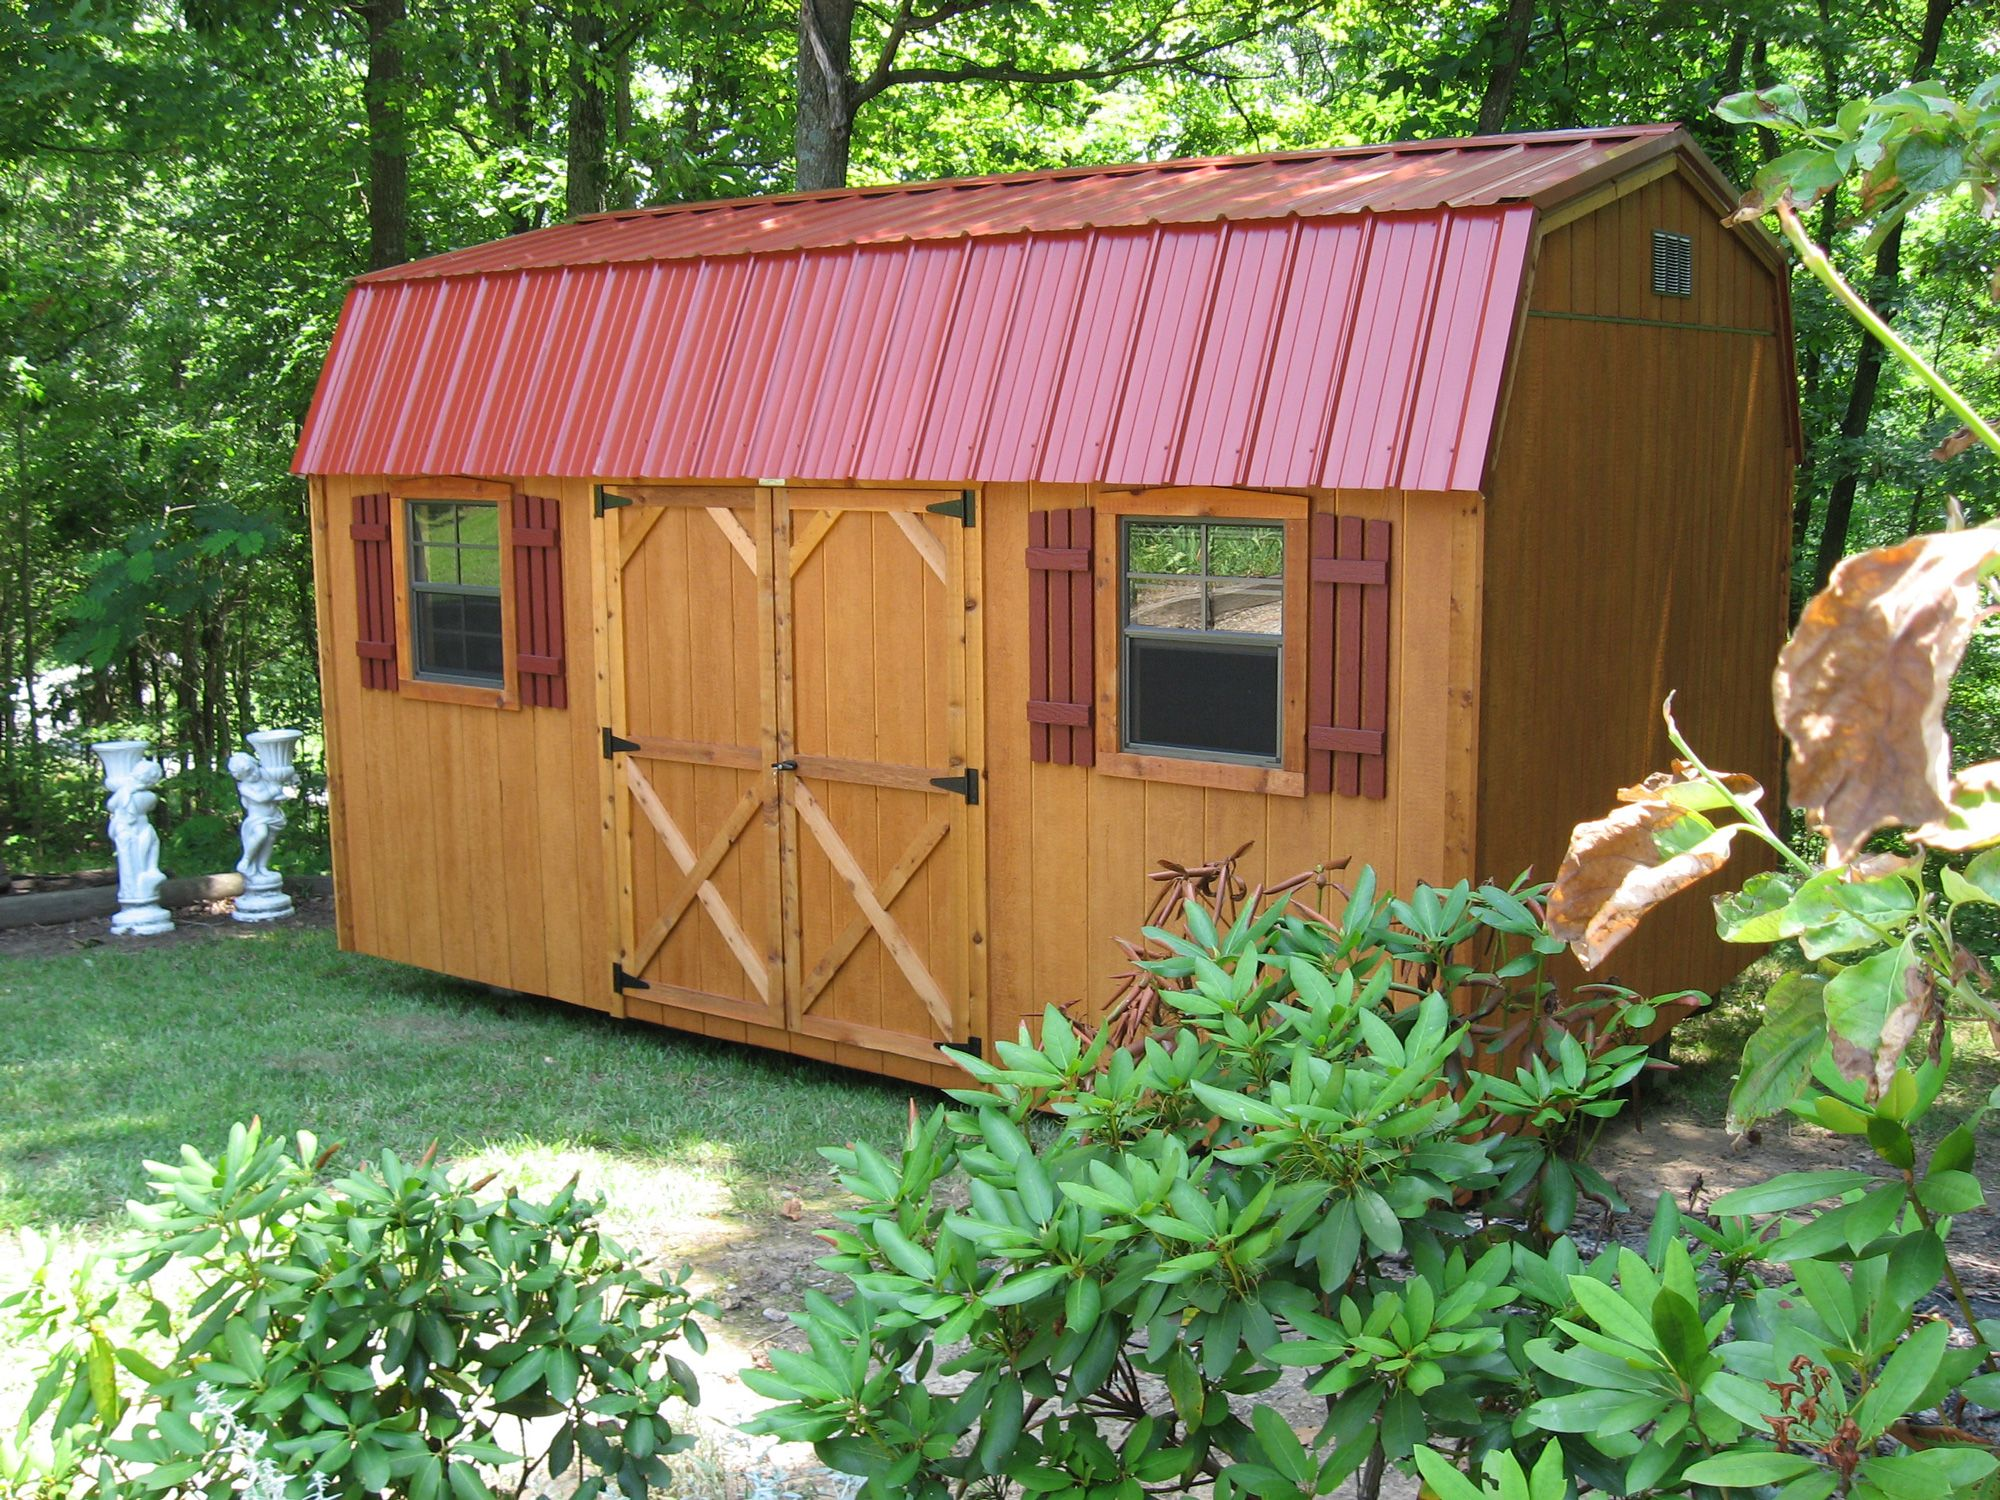 Deluxe with dormer transom windows and cupola - Deluxe Storage Shed